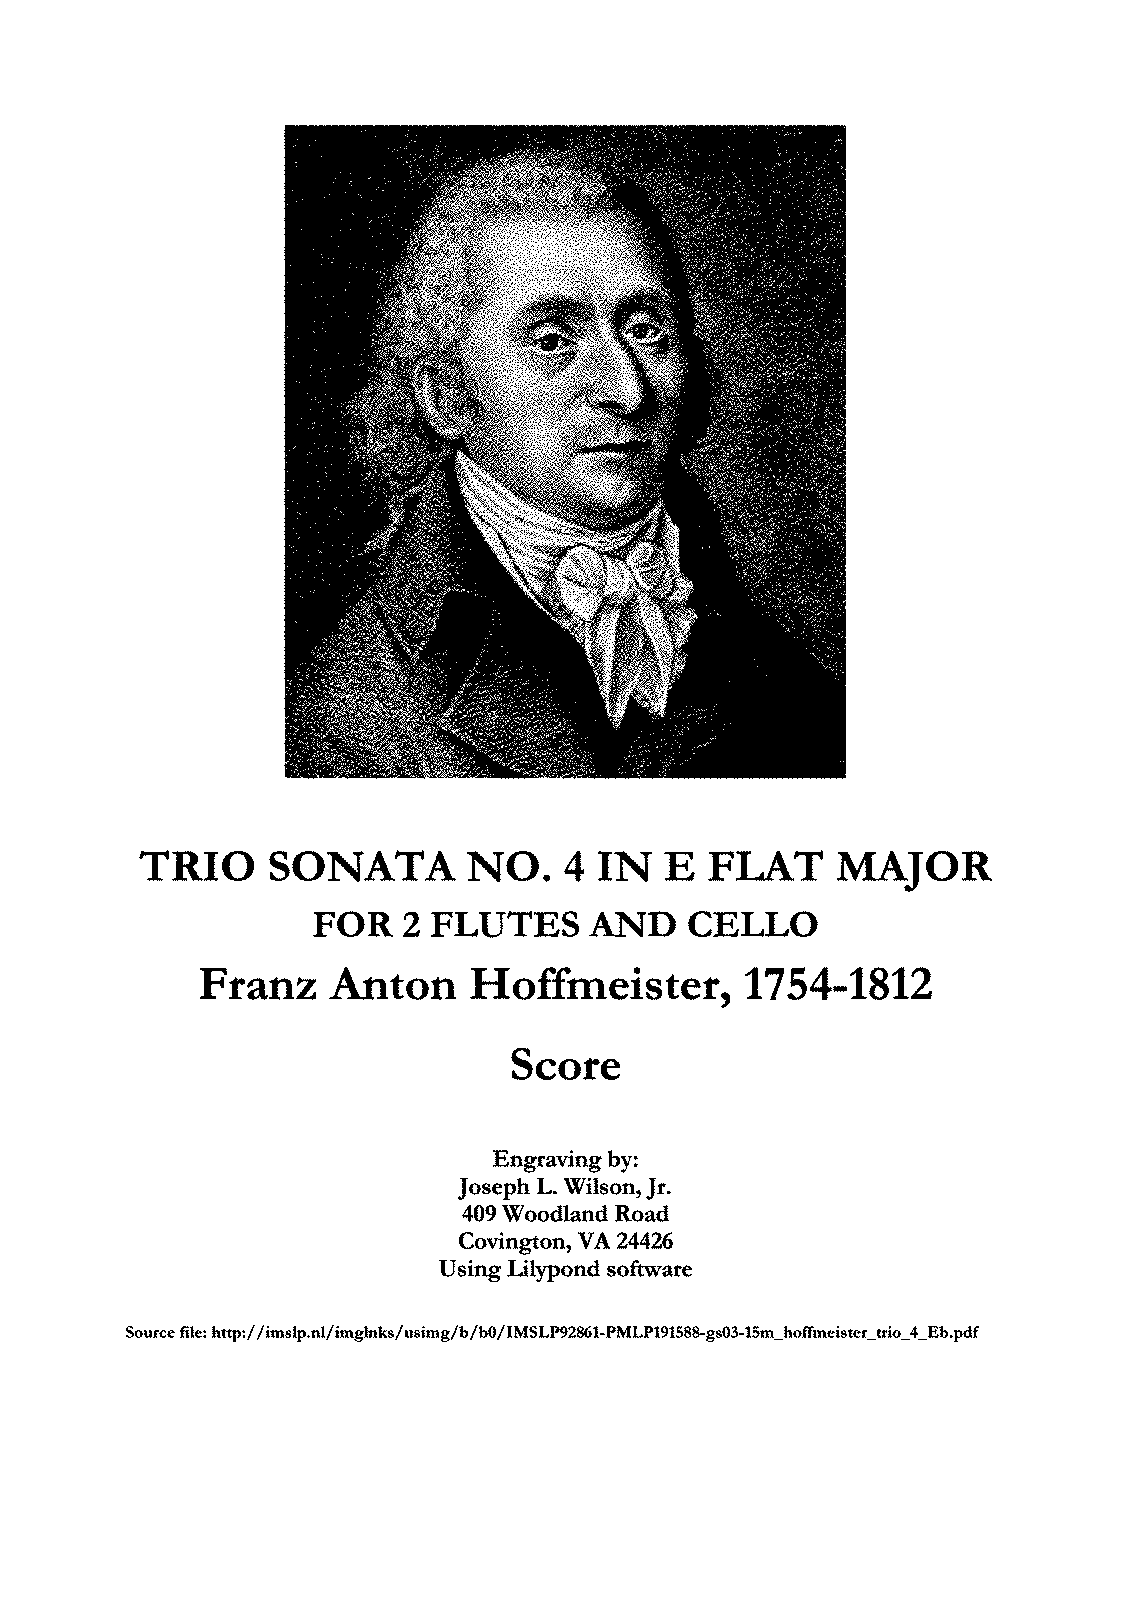 PMLP191588-Hoffmeister Trio No 4 in E Flat Major - Score.pdf